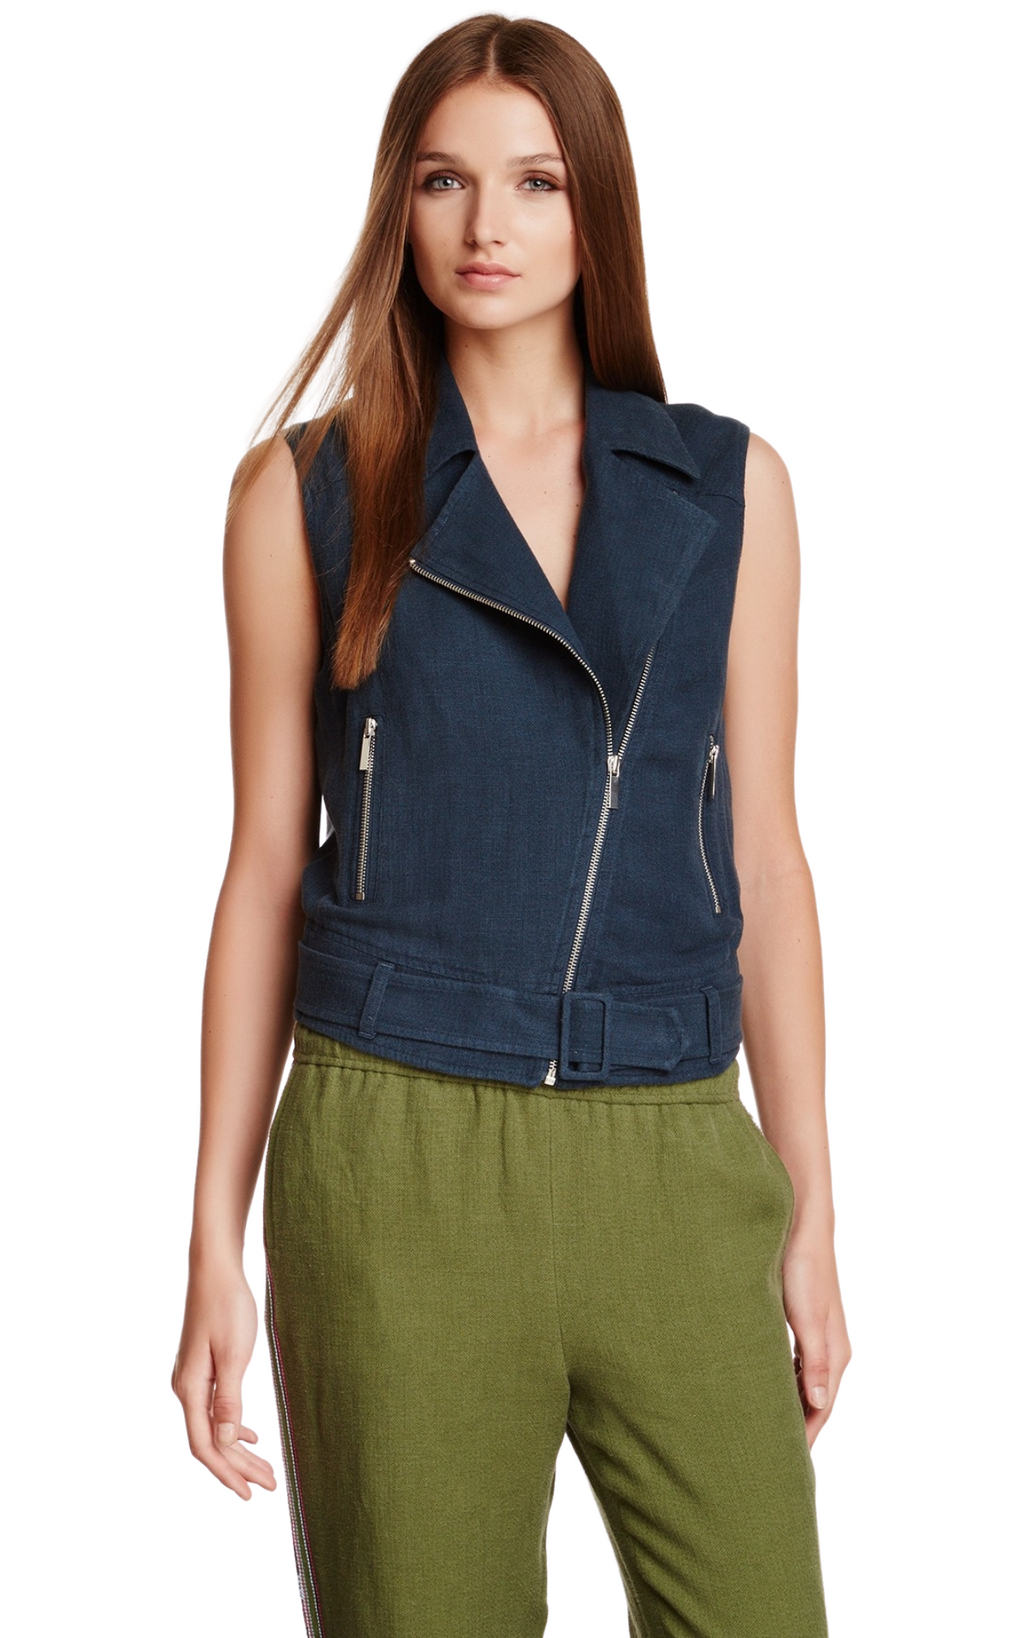 Elizabeth and James Trans Tegan Biker Vest